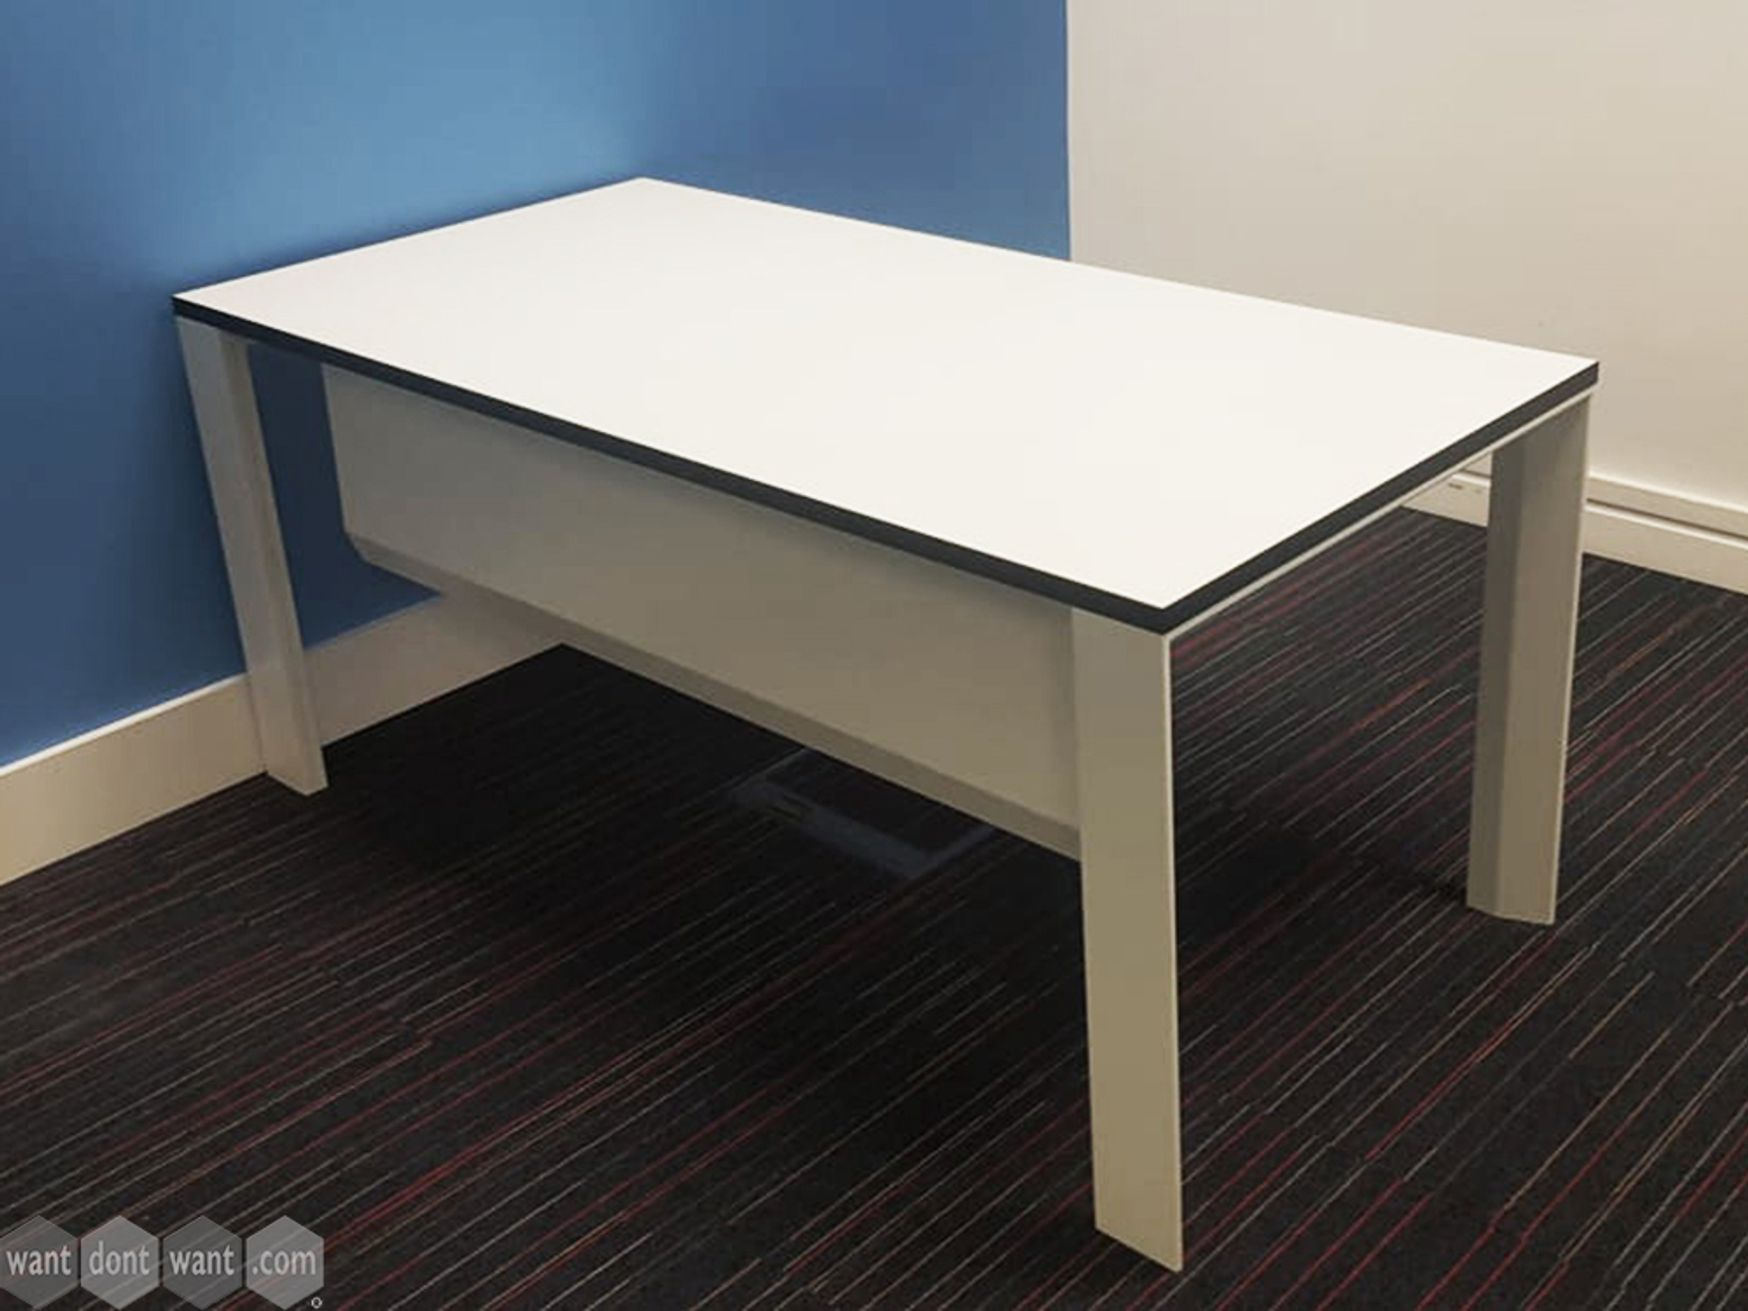 Used 1600mm White Single Desks with Cable Tray and Modesty Panel